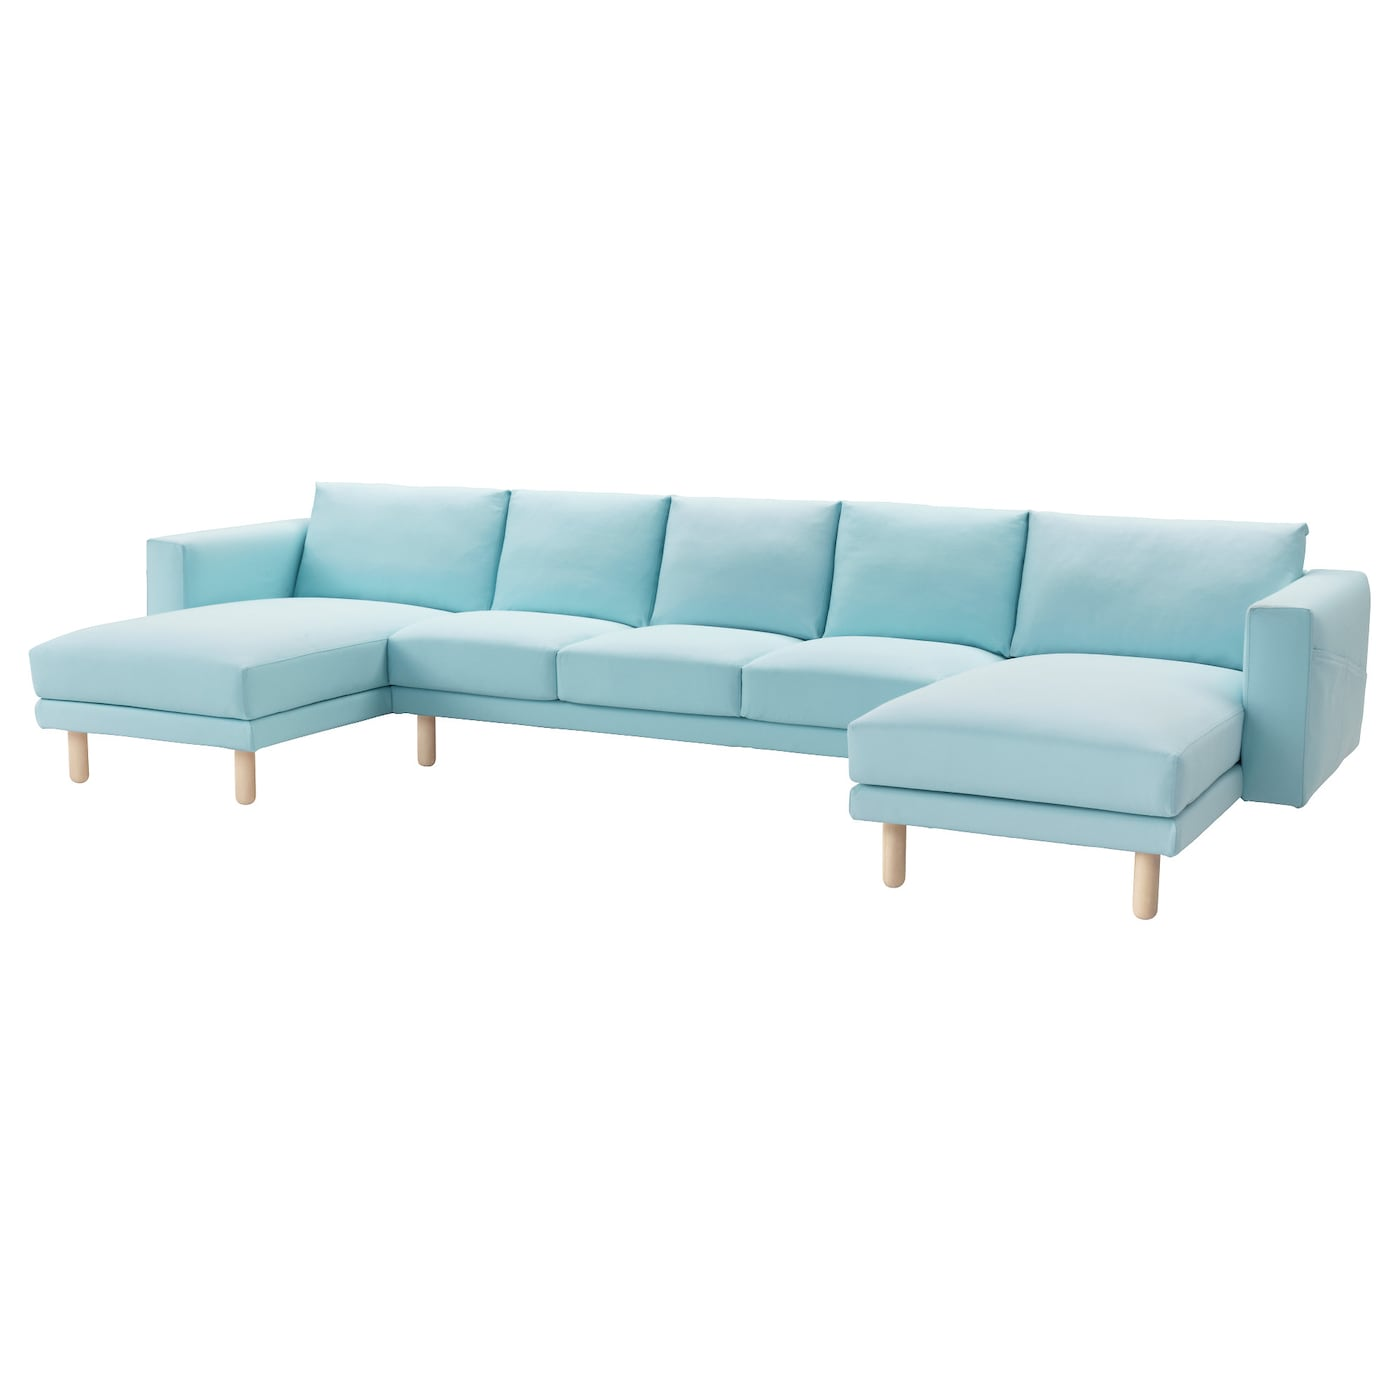 Norsborg 3 seat sofa with 2 chaise longues gr sbo light for 3 seat sofa with chaise